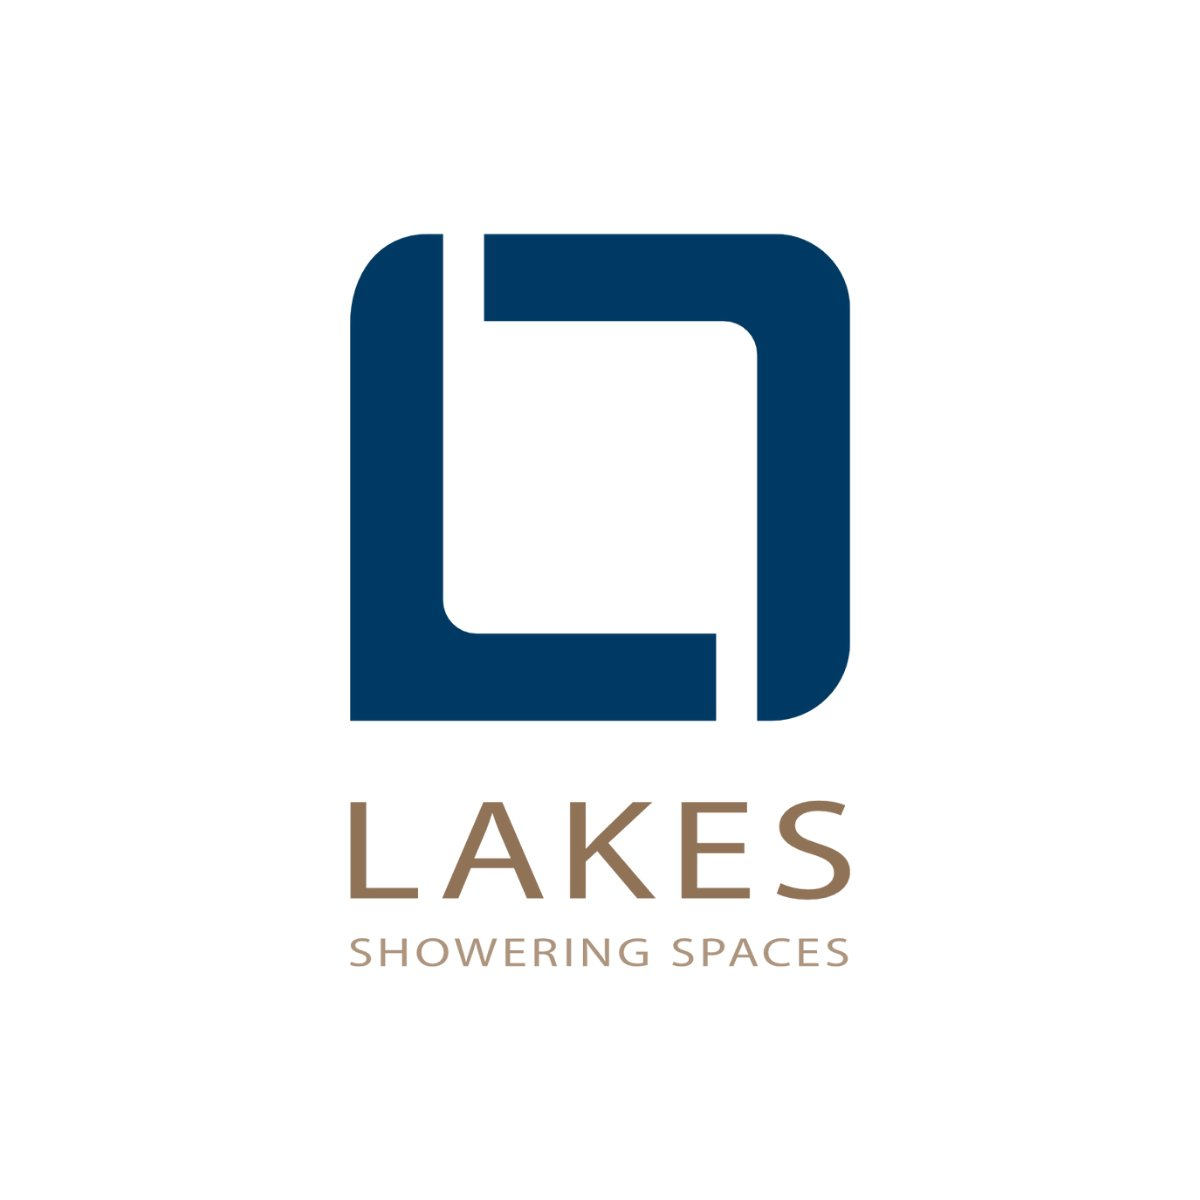 The Lakes Showering Spaces catalogue has been updated on the Virtual Worlds user centre. This update adds a wide range of new shower enclosures and trays to the Lakes catalogue @LakesForLife #CAD #KBB #Catalogue #VW4D